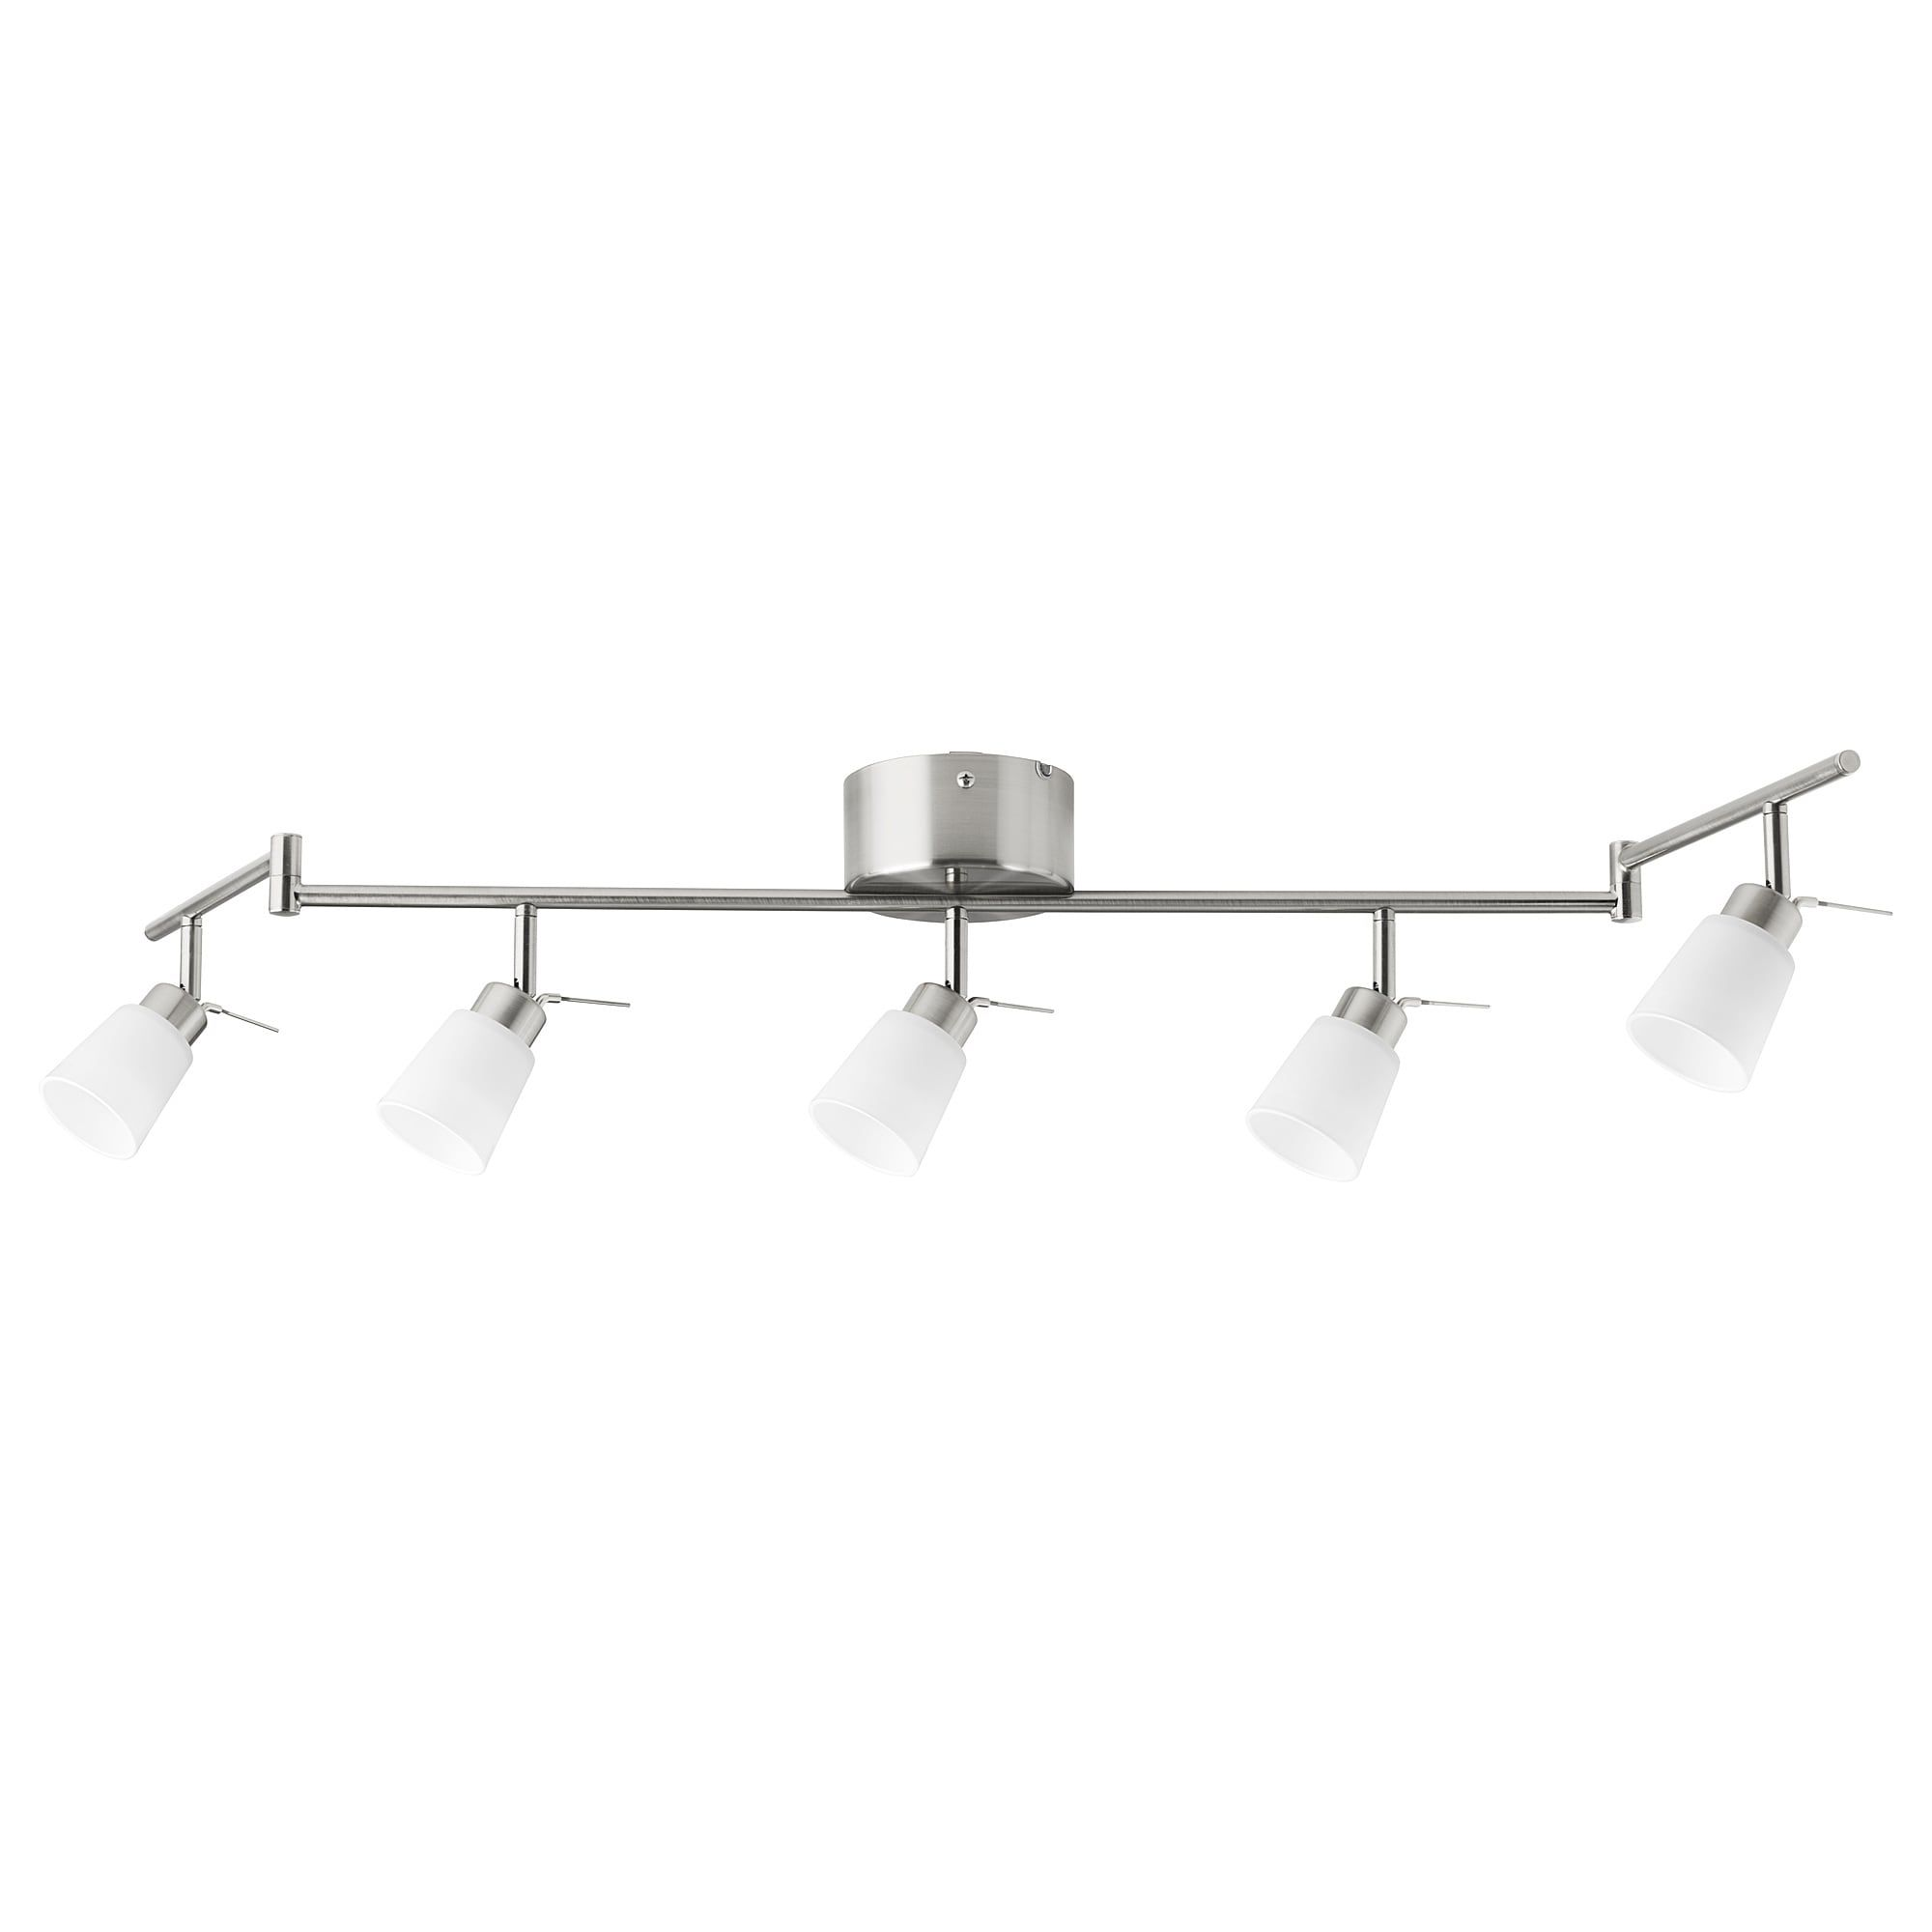 Us Furniture And Home Furnishings Ceiling Lights Ceiling Spotlights Led Ceiling Spotlights